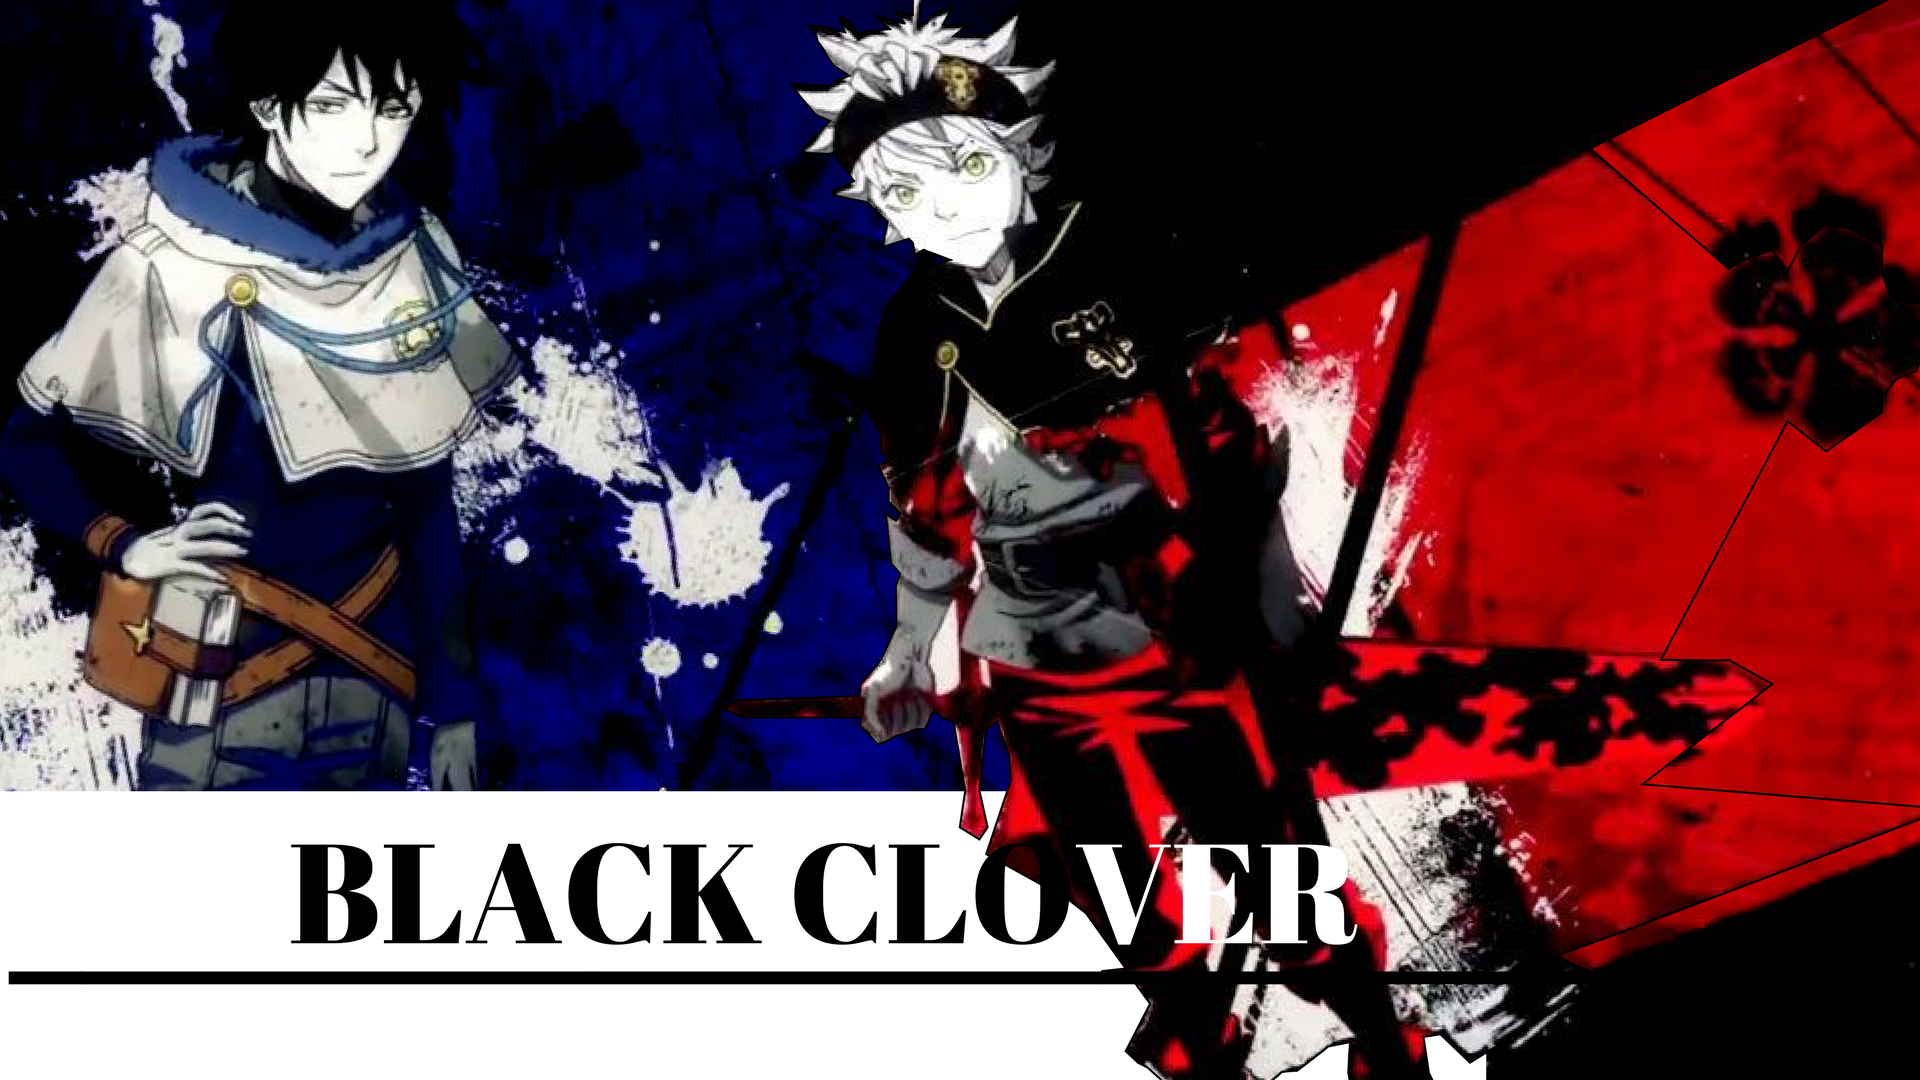 Anime Black Clover Title Wallpapers On Wallpaperdog Well you're in luck, because here they come. anime black clover title wallpapers on